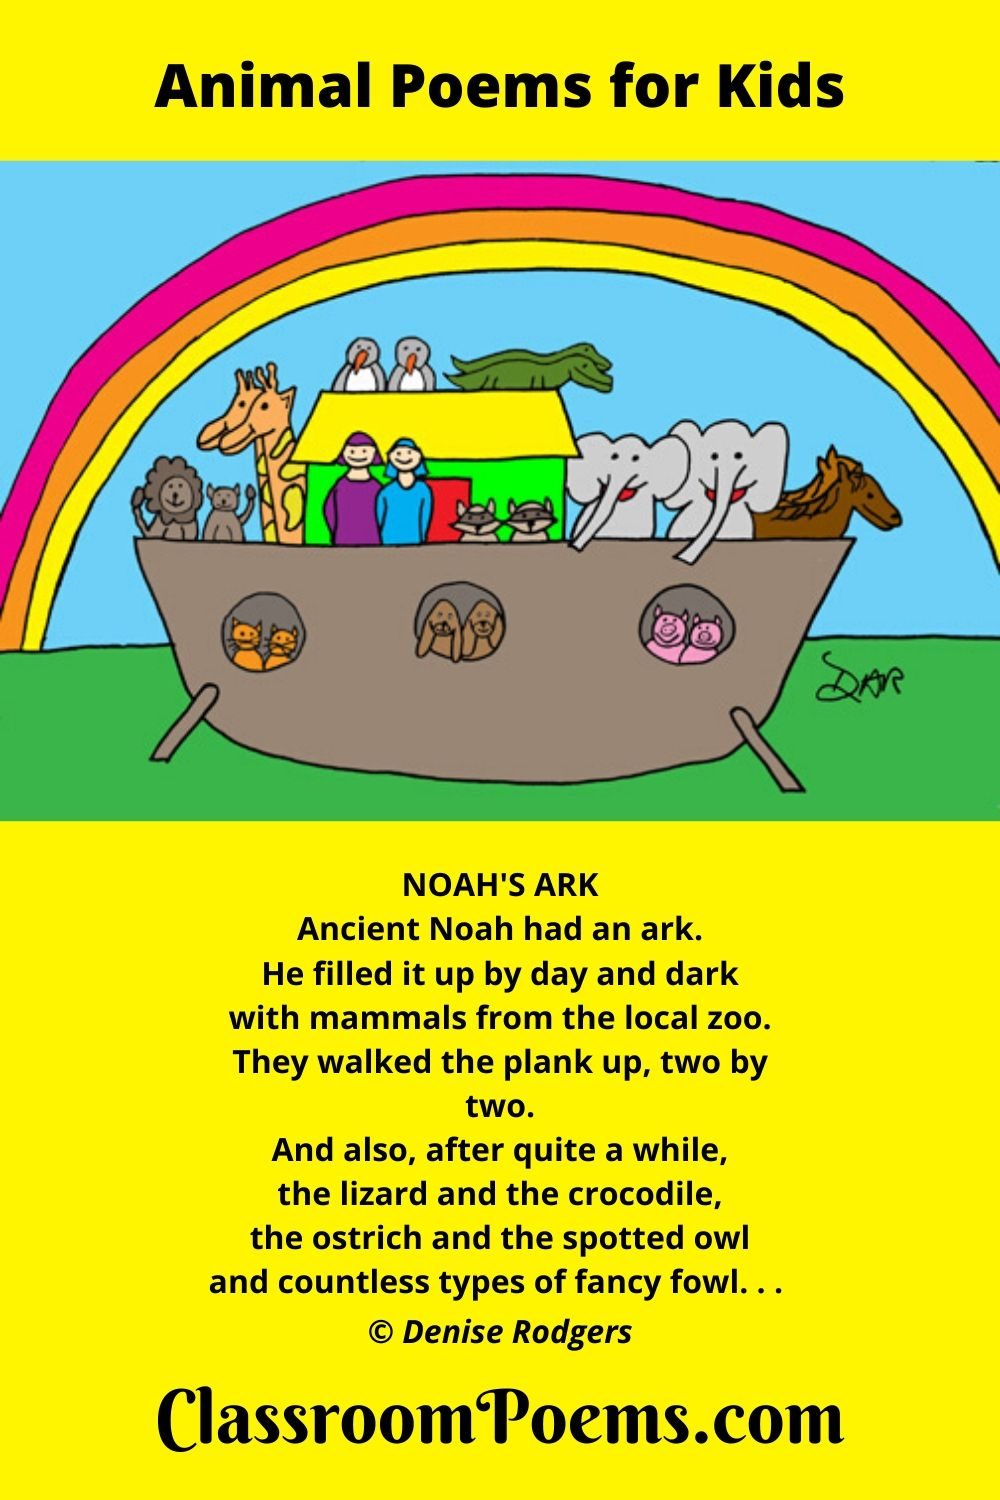 Noah's Ark drawing and poem by Denise Rodgers on Classroompoems.com.